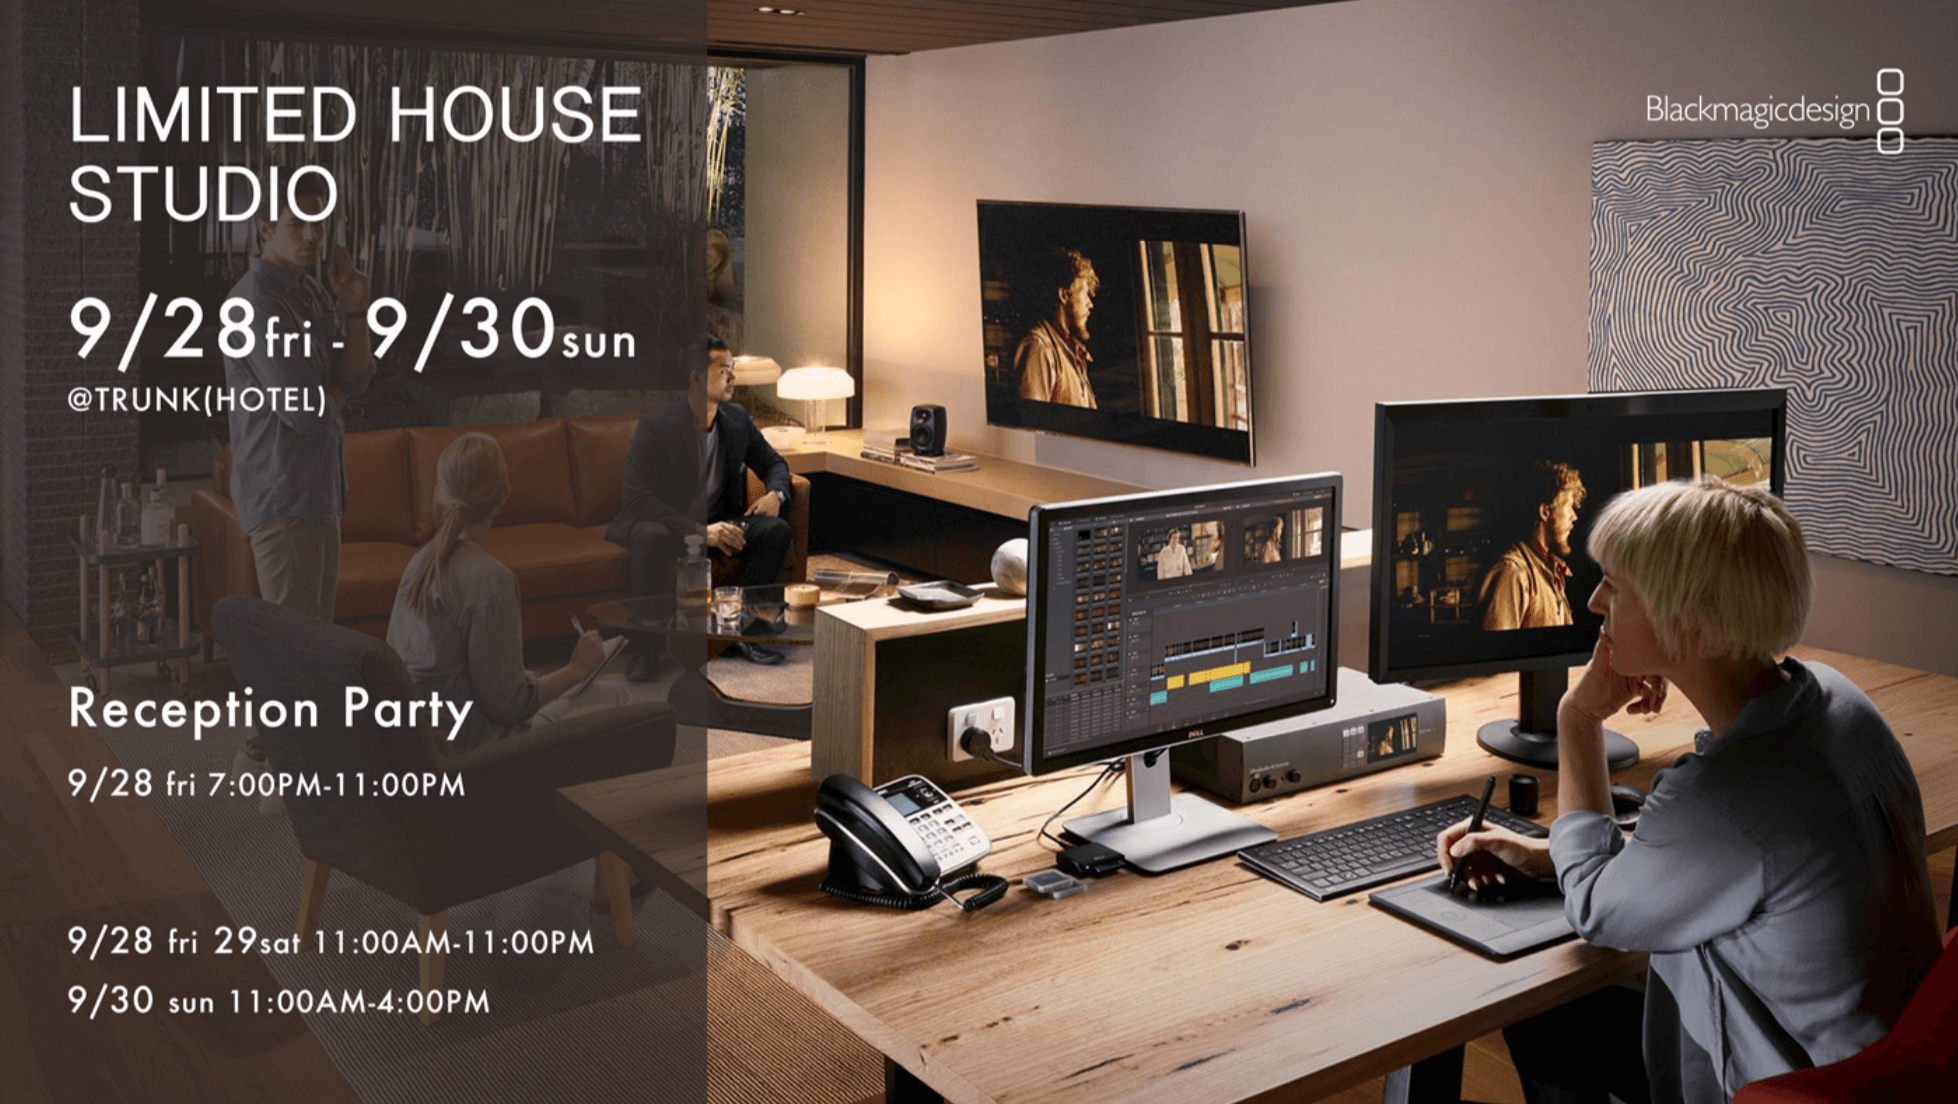 Blackmagic Design LIMITED HOUSE STUDIO